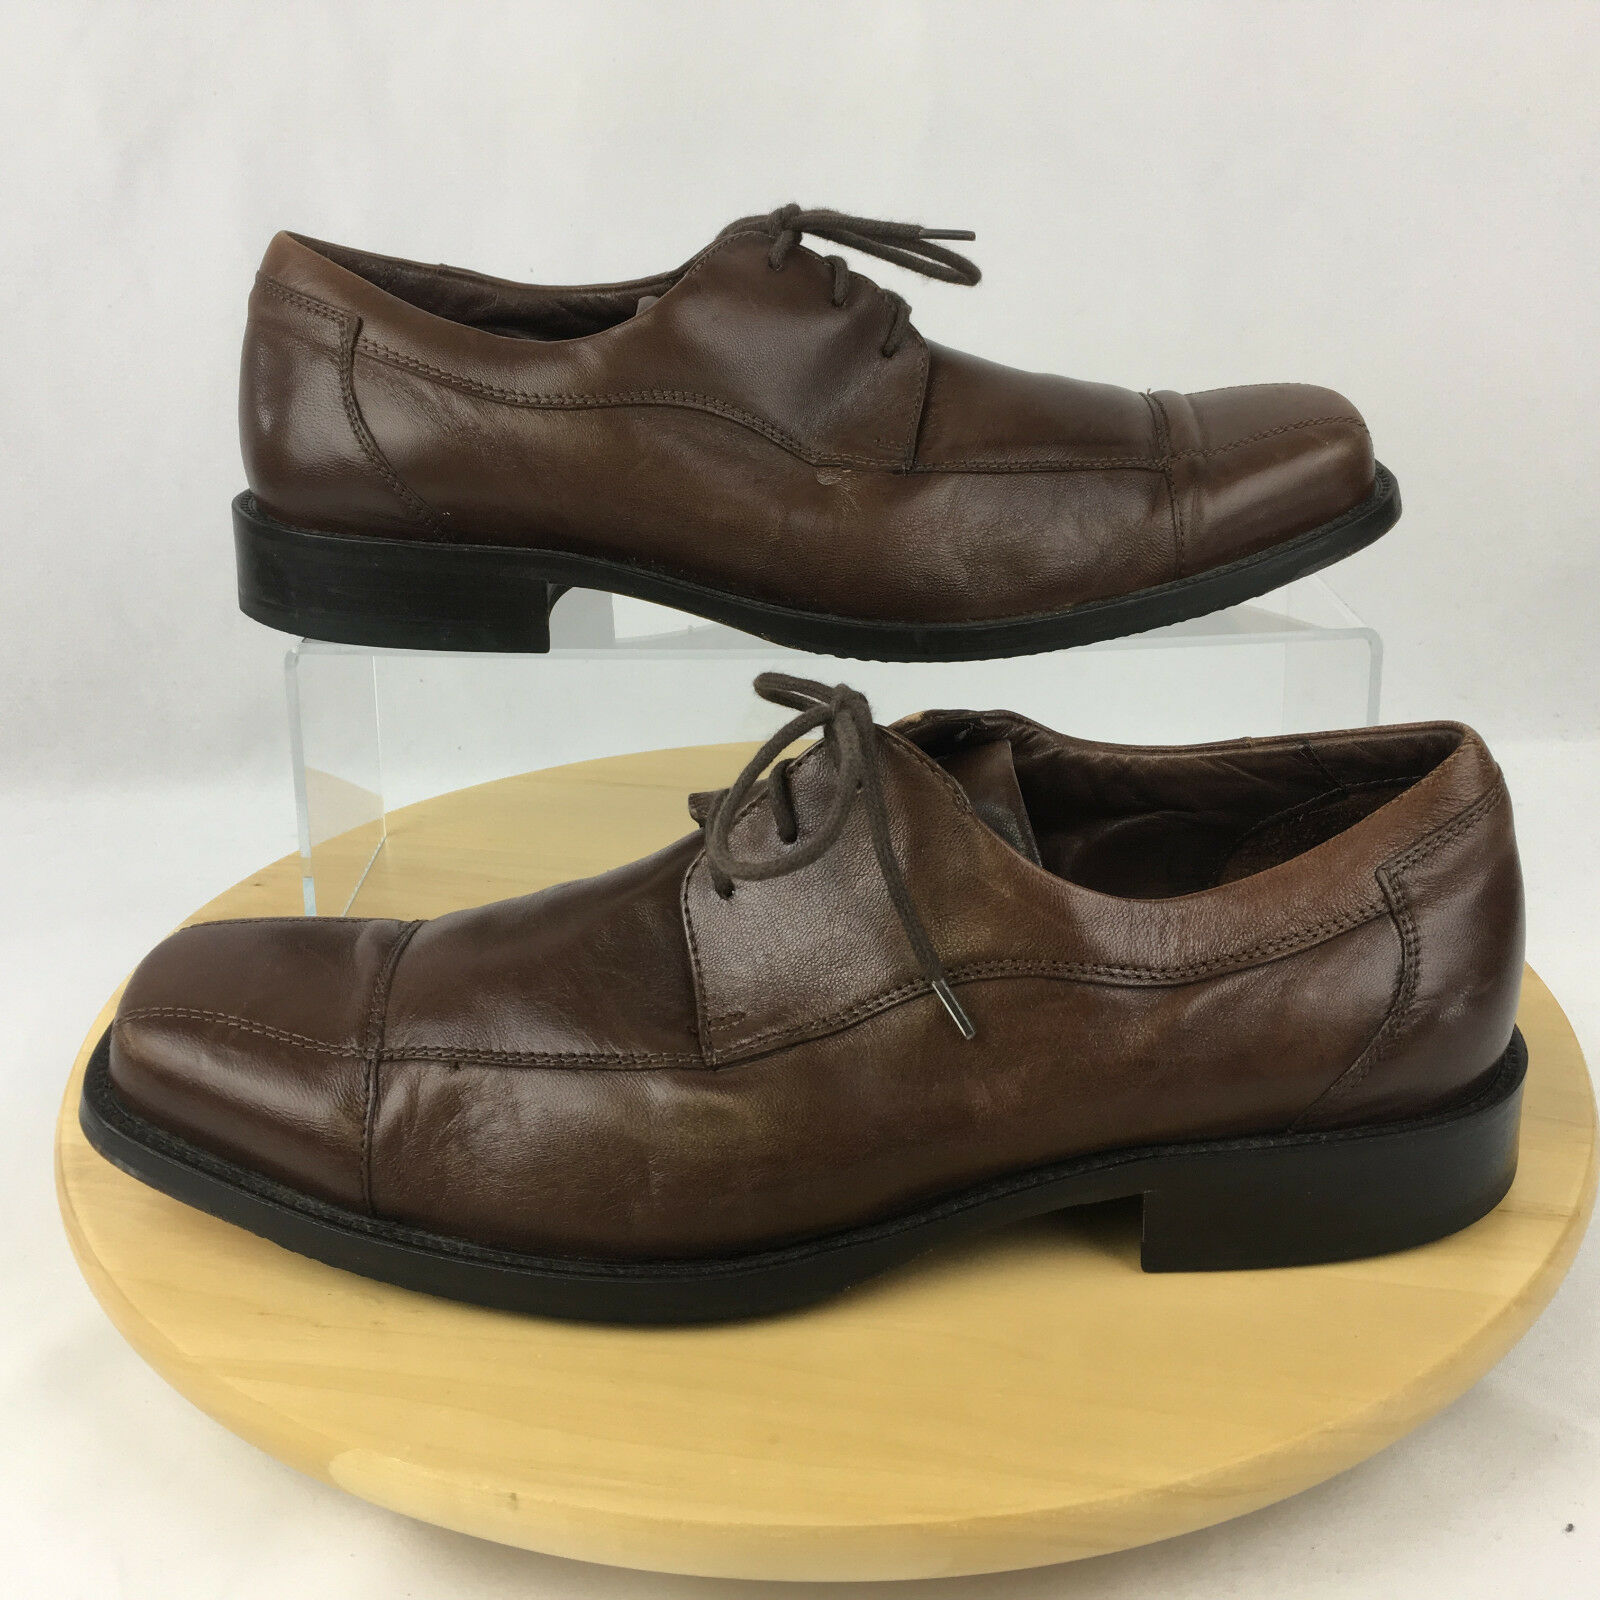 Johnston & Murphy Dobson Oxford Shoes Mens Size 10.5M Brown Leather Cap Toe